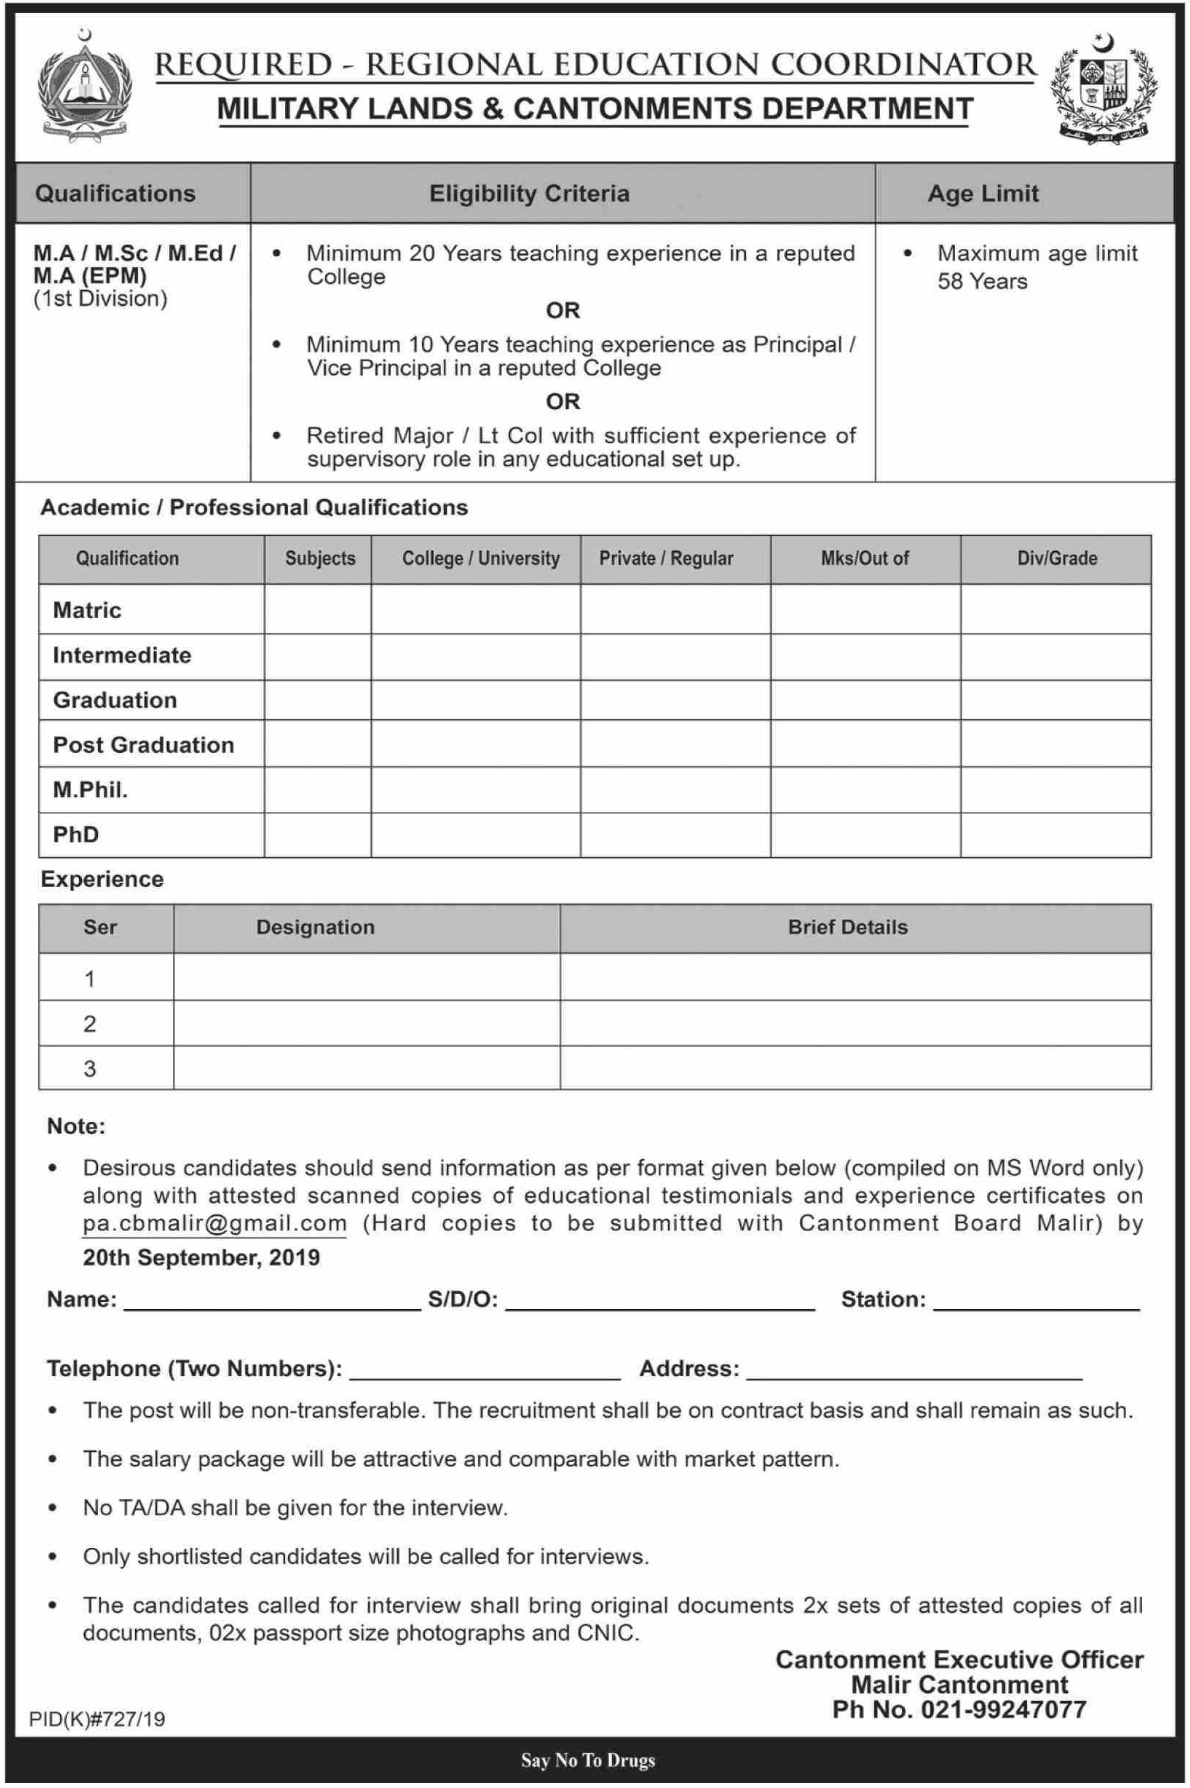 Military Lands & Cantonments Department Jobs 2019 Karachi